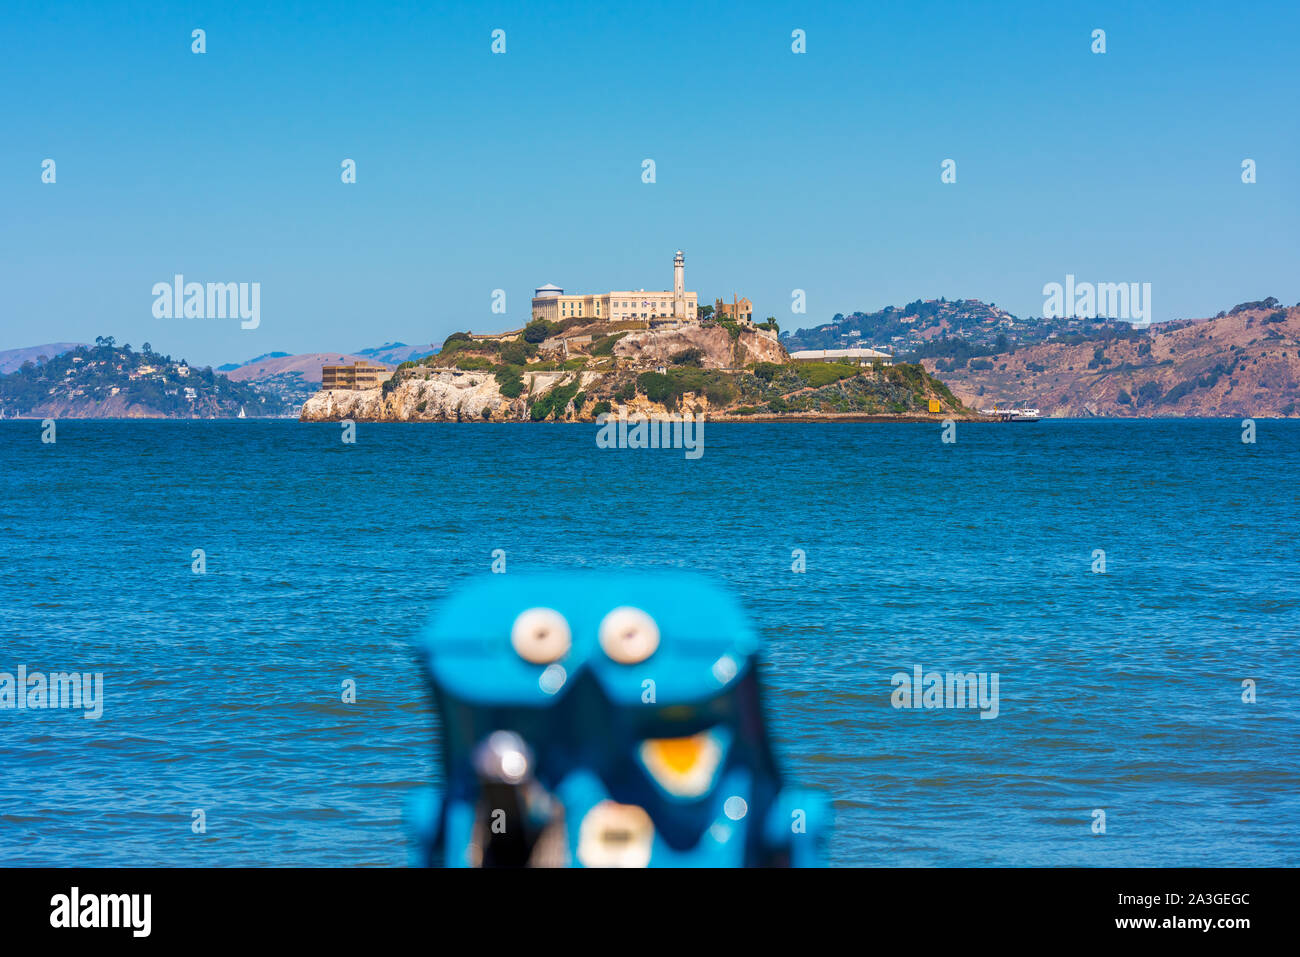 Alcatraz Island and former prison in San Francisco Bay, California, USA. Out of focus binoculars on foreground. Stock Photo